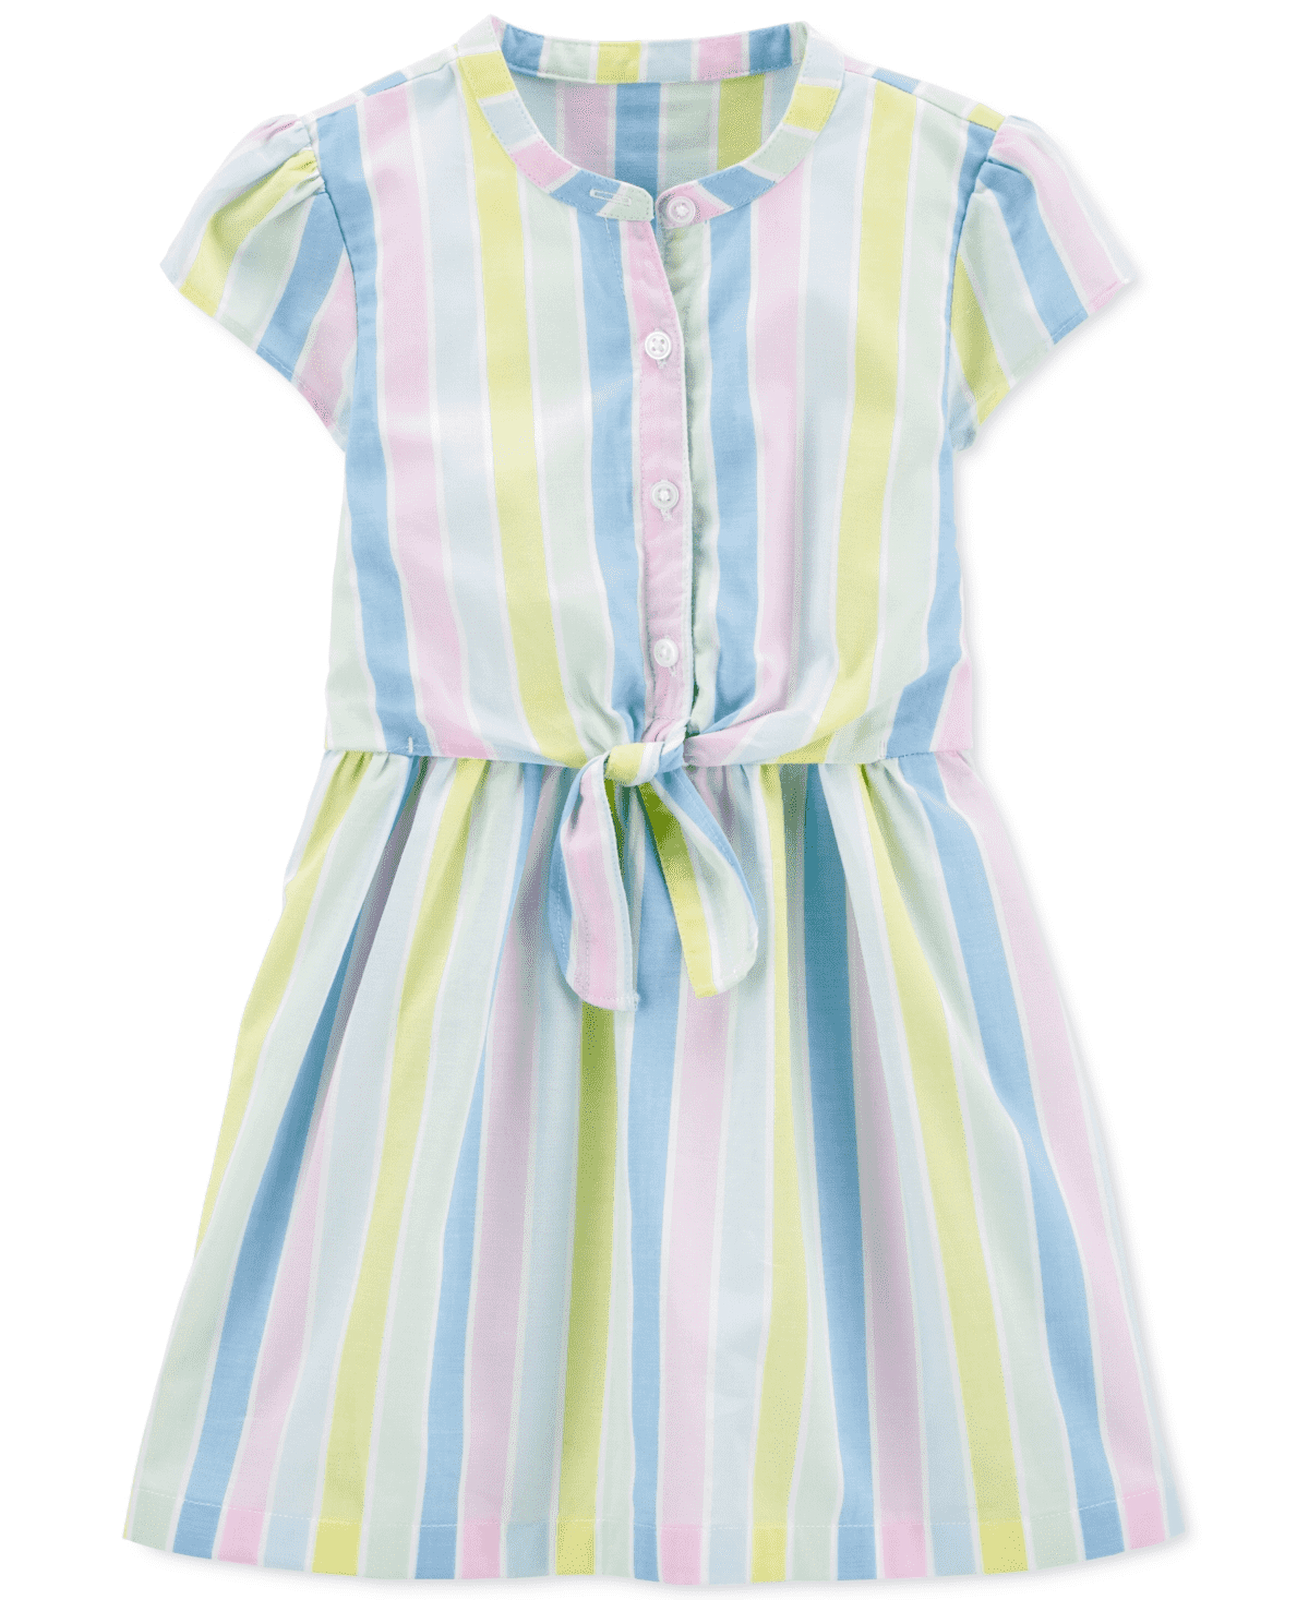 Carter's Striped Bow Dress 2H410110